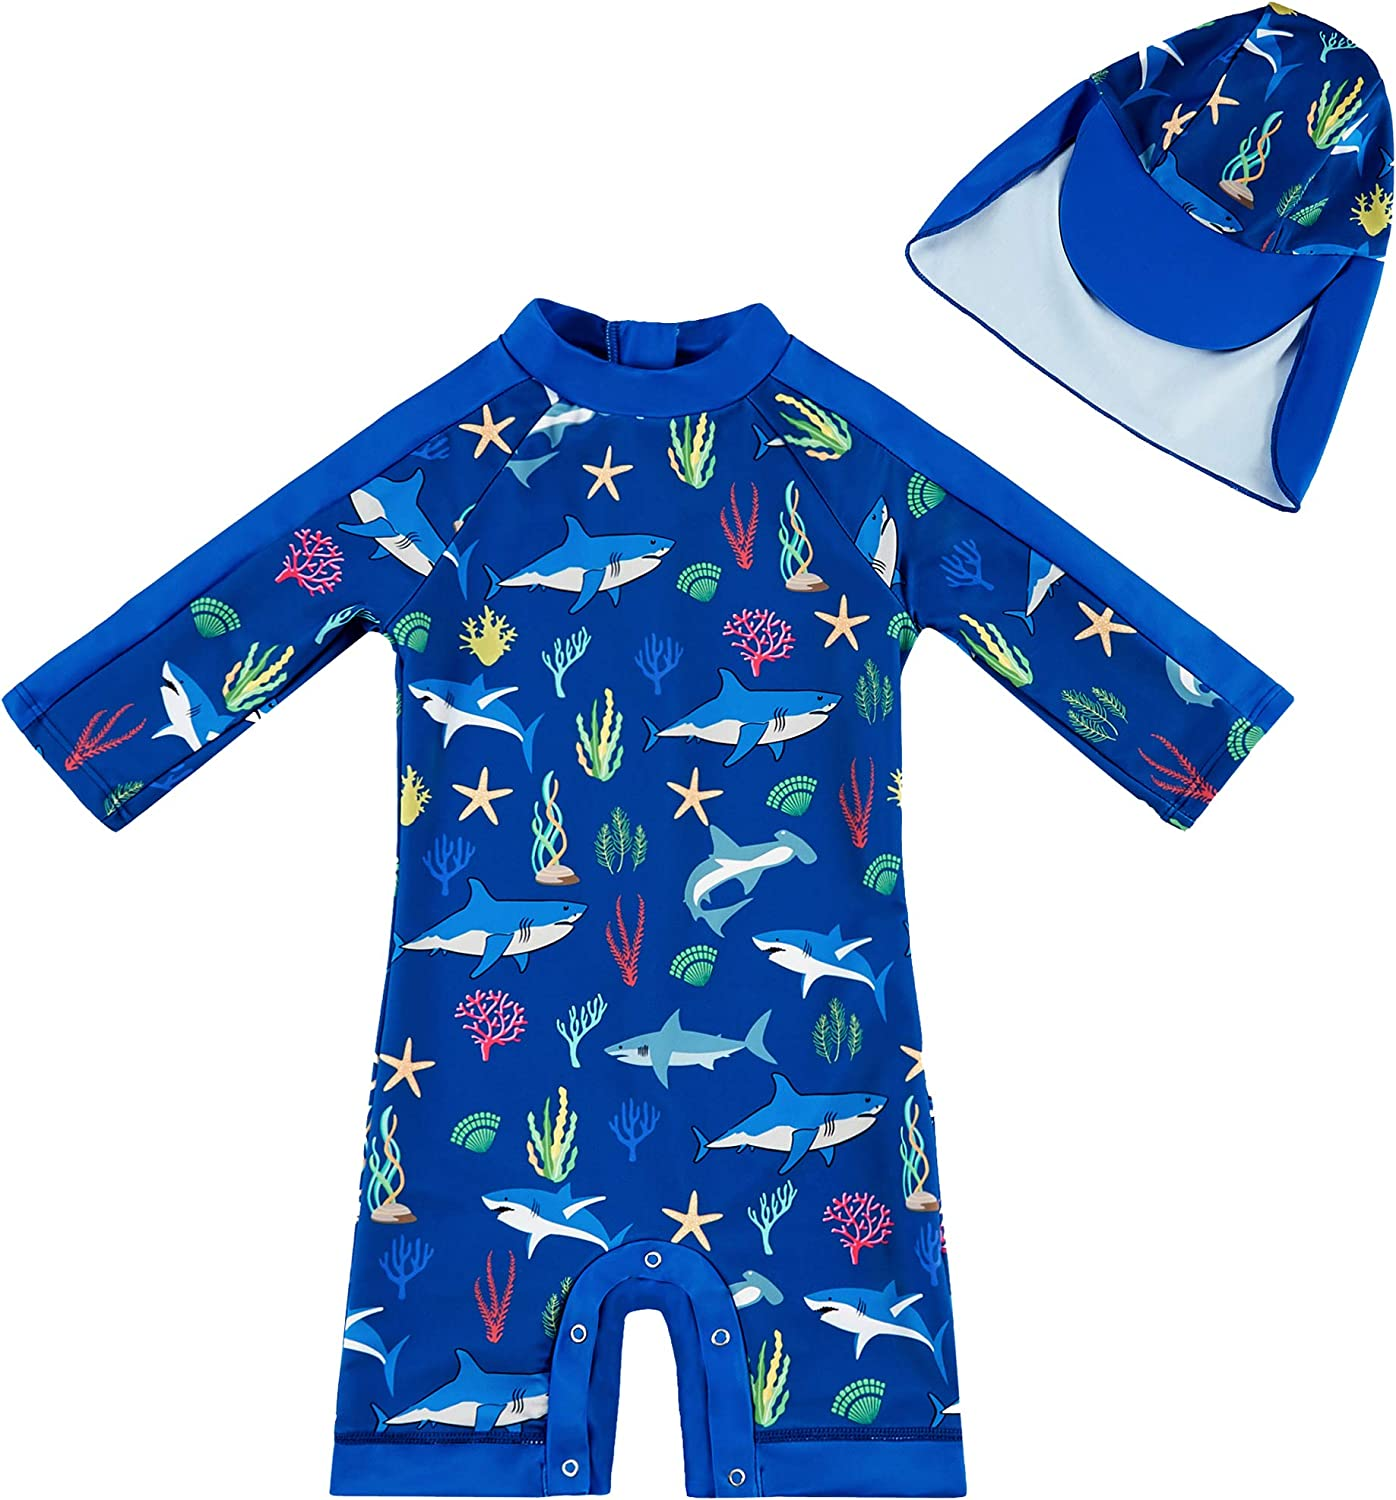 upandfast Free Shipping Cheap Bargain Gift Baby Boy Girl Swimsuit with Sales of SALE items from new works UPF Sun 50+ Pr Bottom Snap